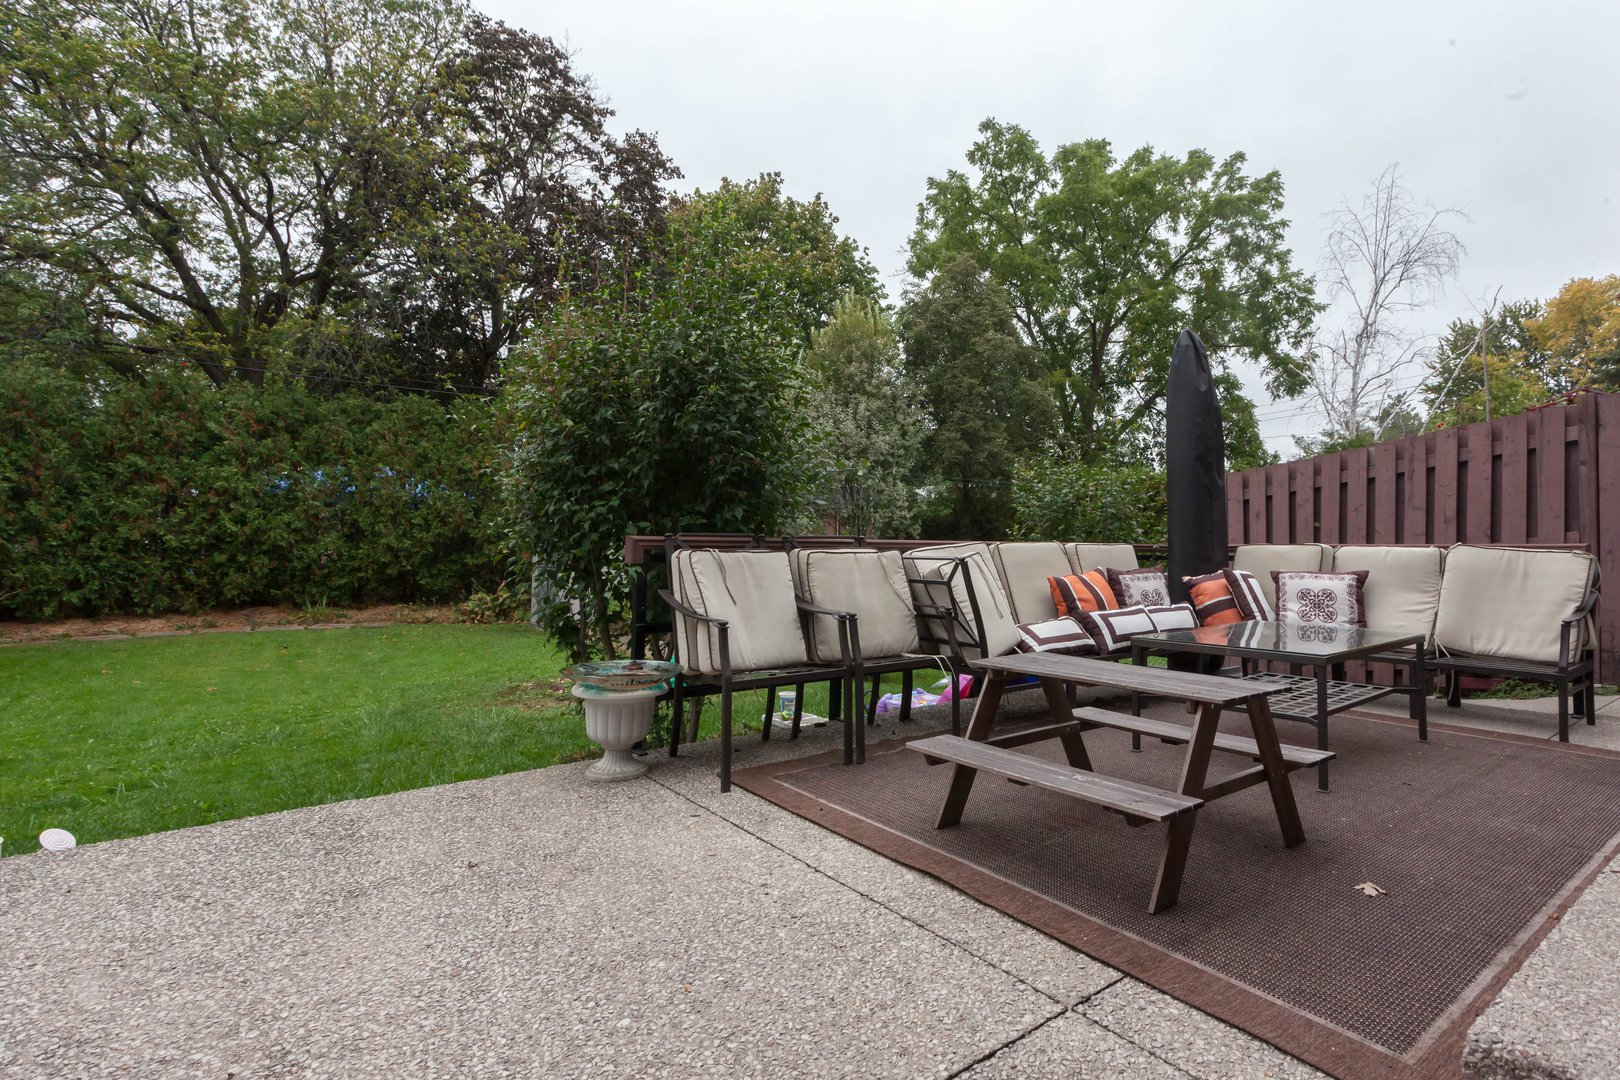 House for rent at 84 Laurel Avenue, Etobicoke, ON. This is the patio terrace with outdoor living space and lawn.